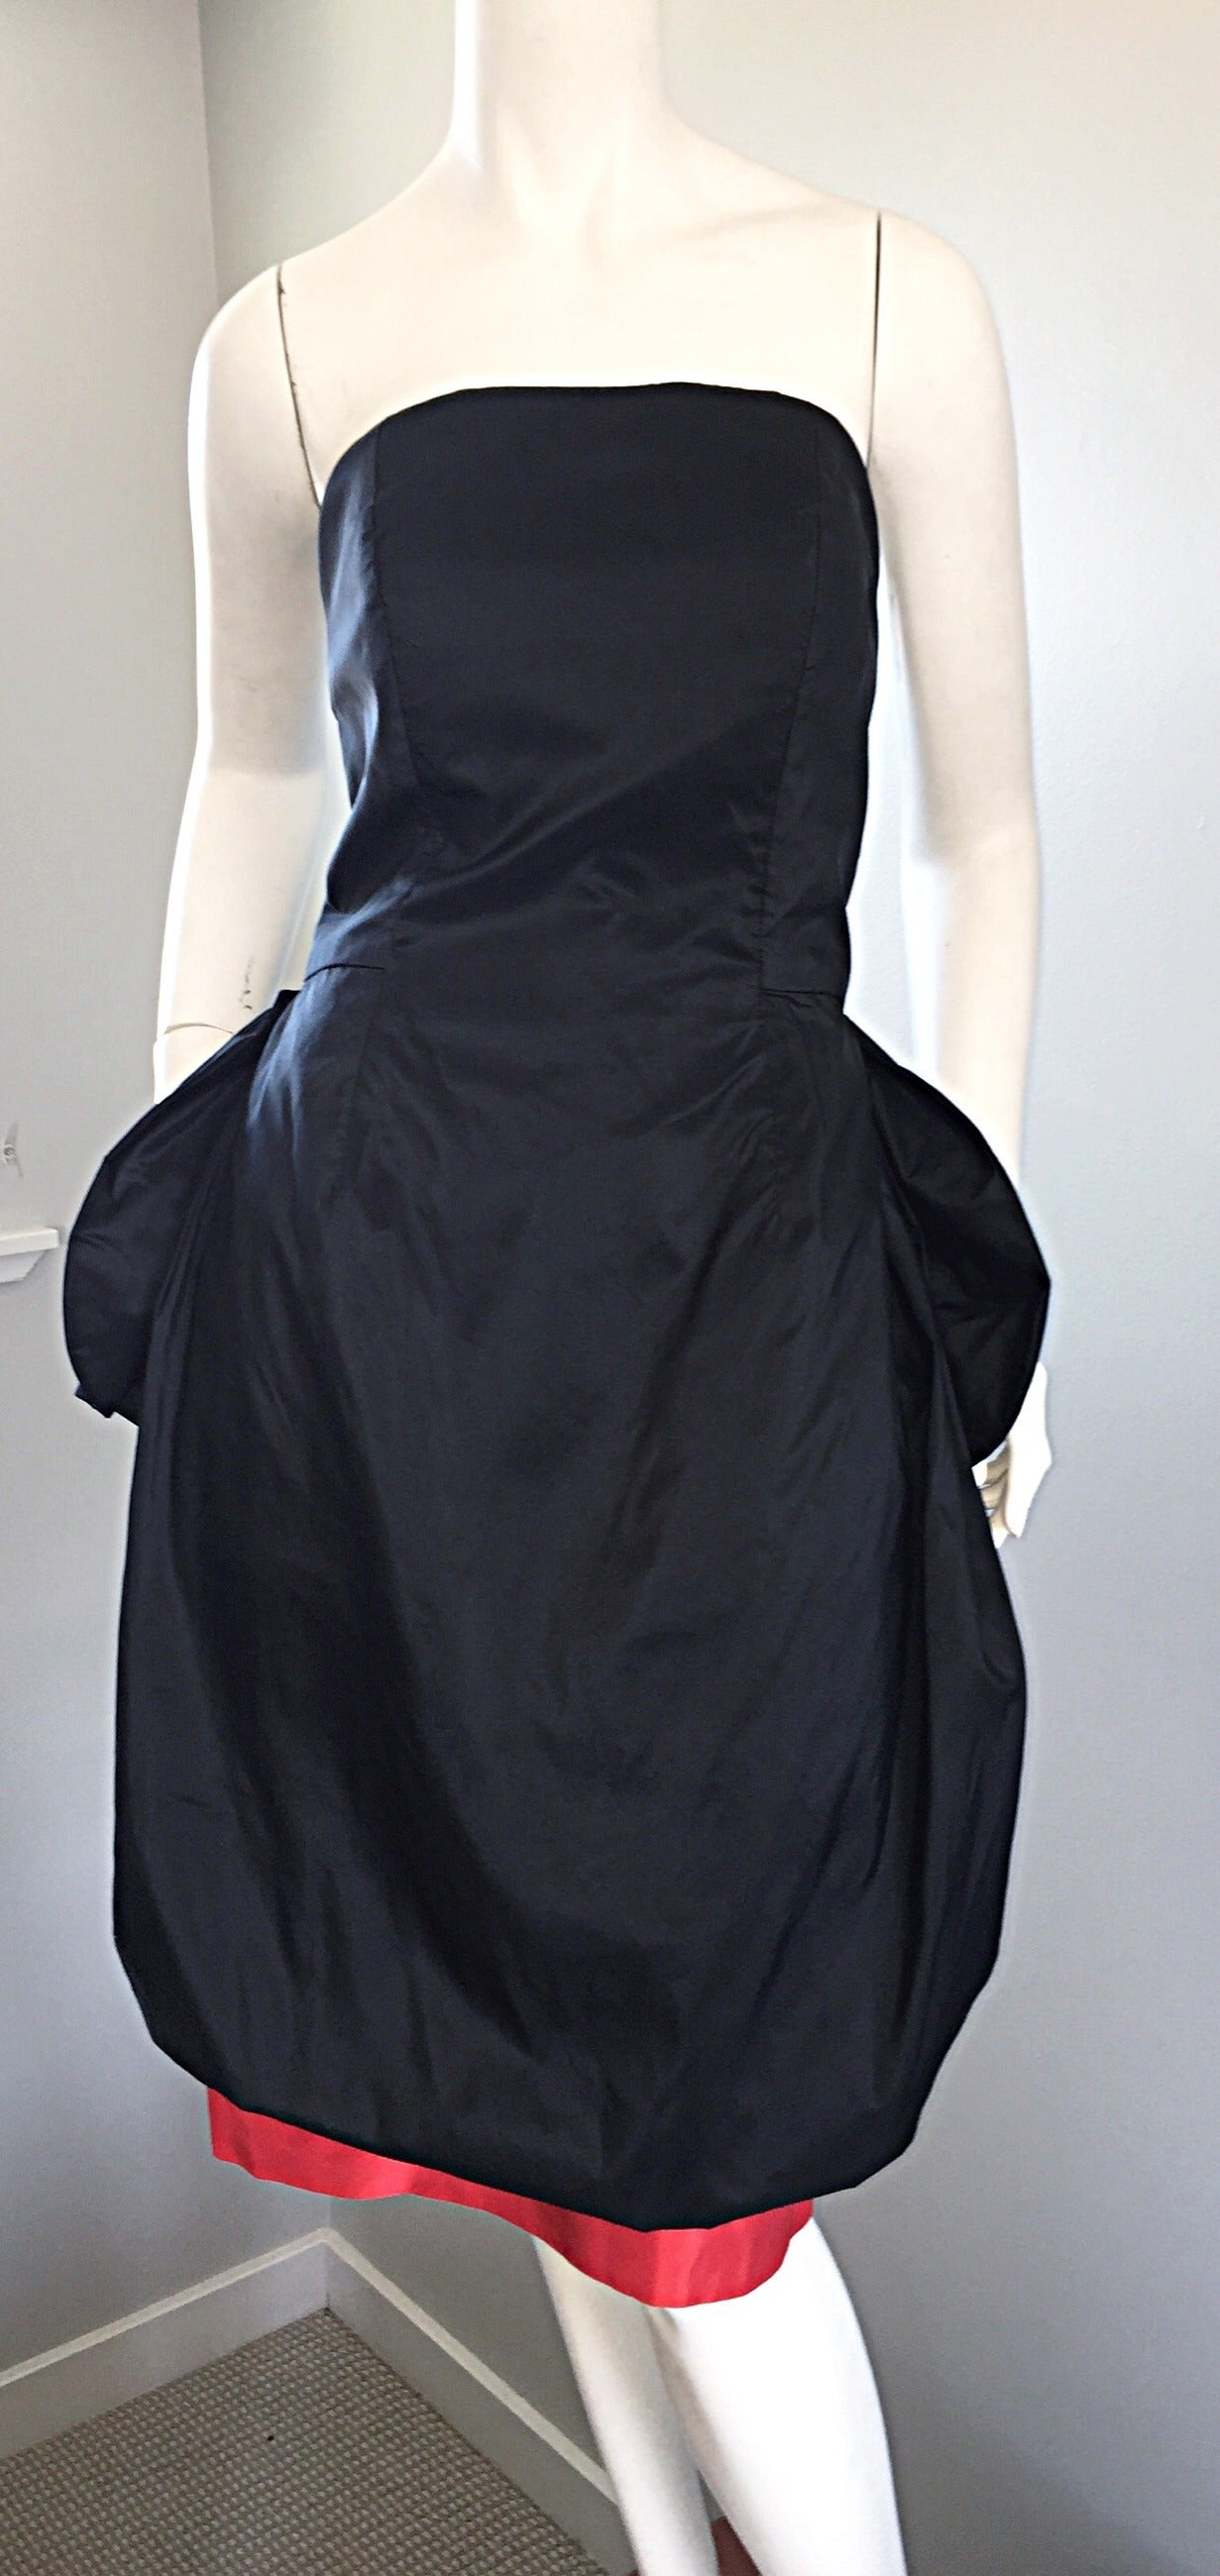 Rare Vintage Adam Beall Black + Red Strapless Silk ' Pouf ' Dress 7